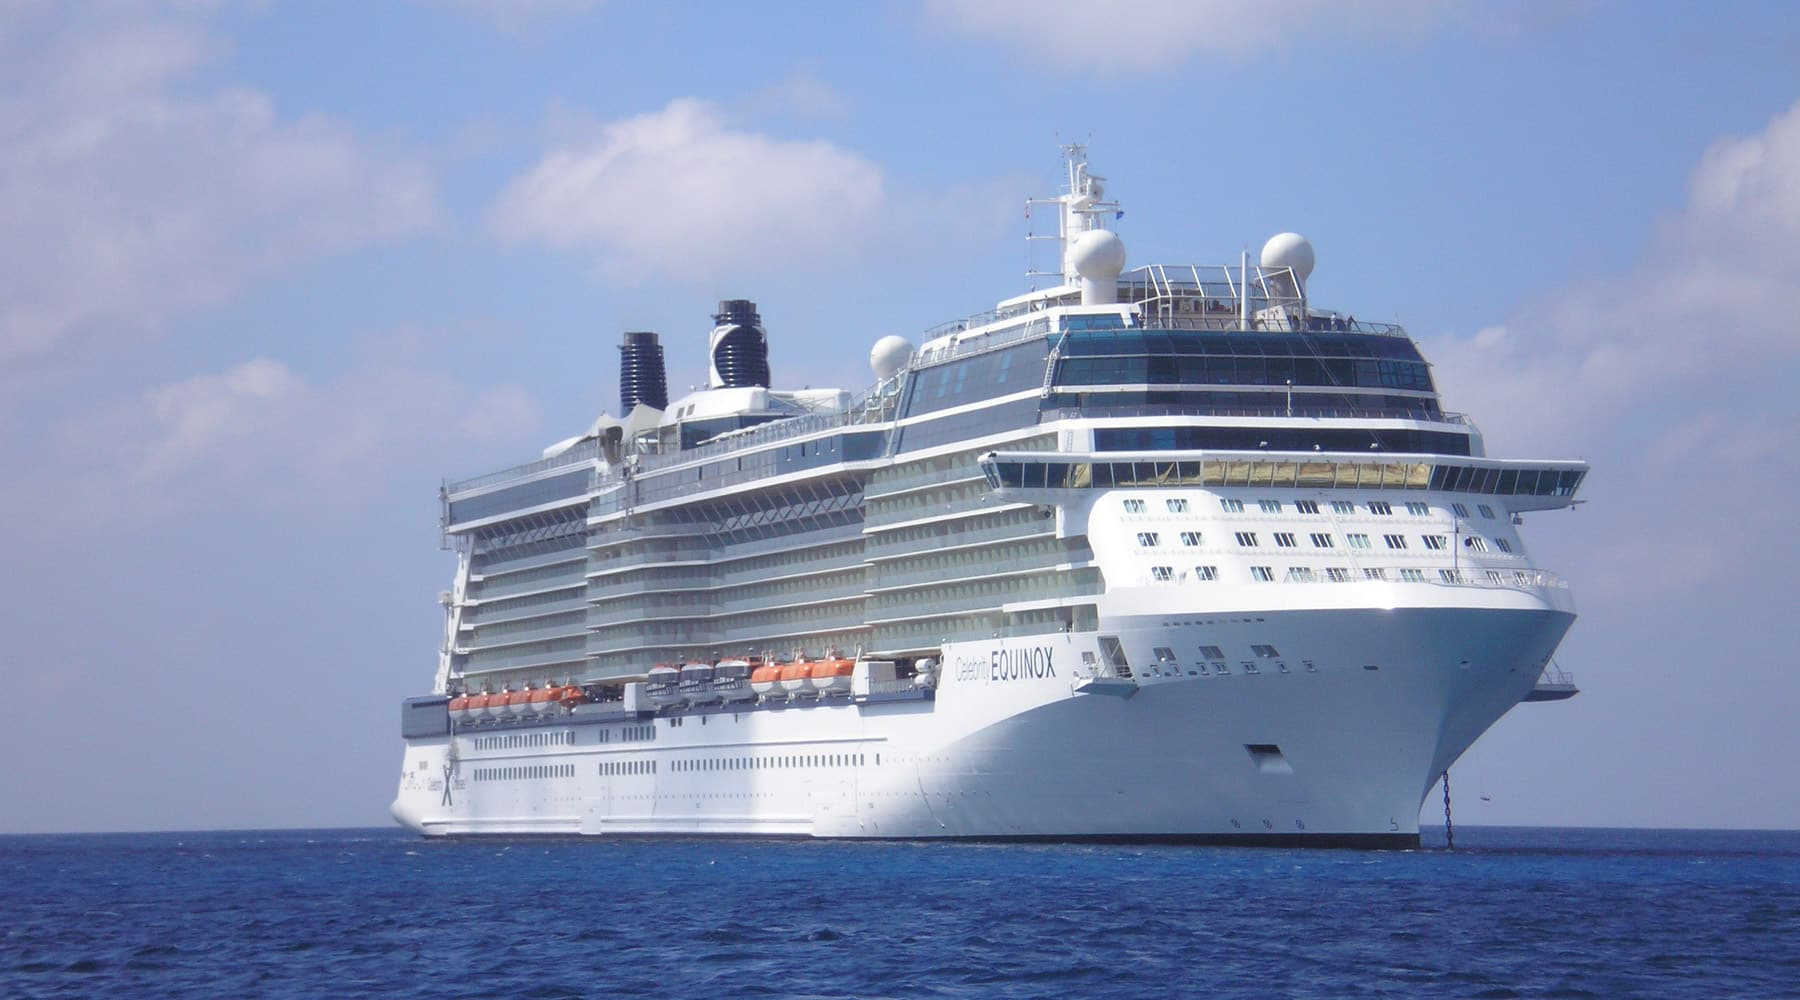 """The Ultimate """"Friends"""" Fans Can Enjoy 'Friends'-themed Cruise by Celebrity Cruises 1"""